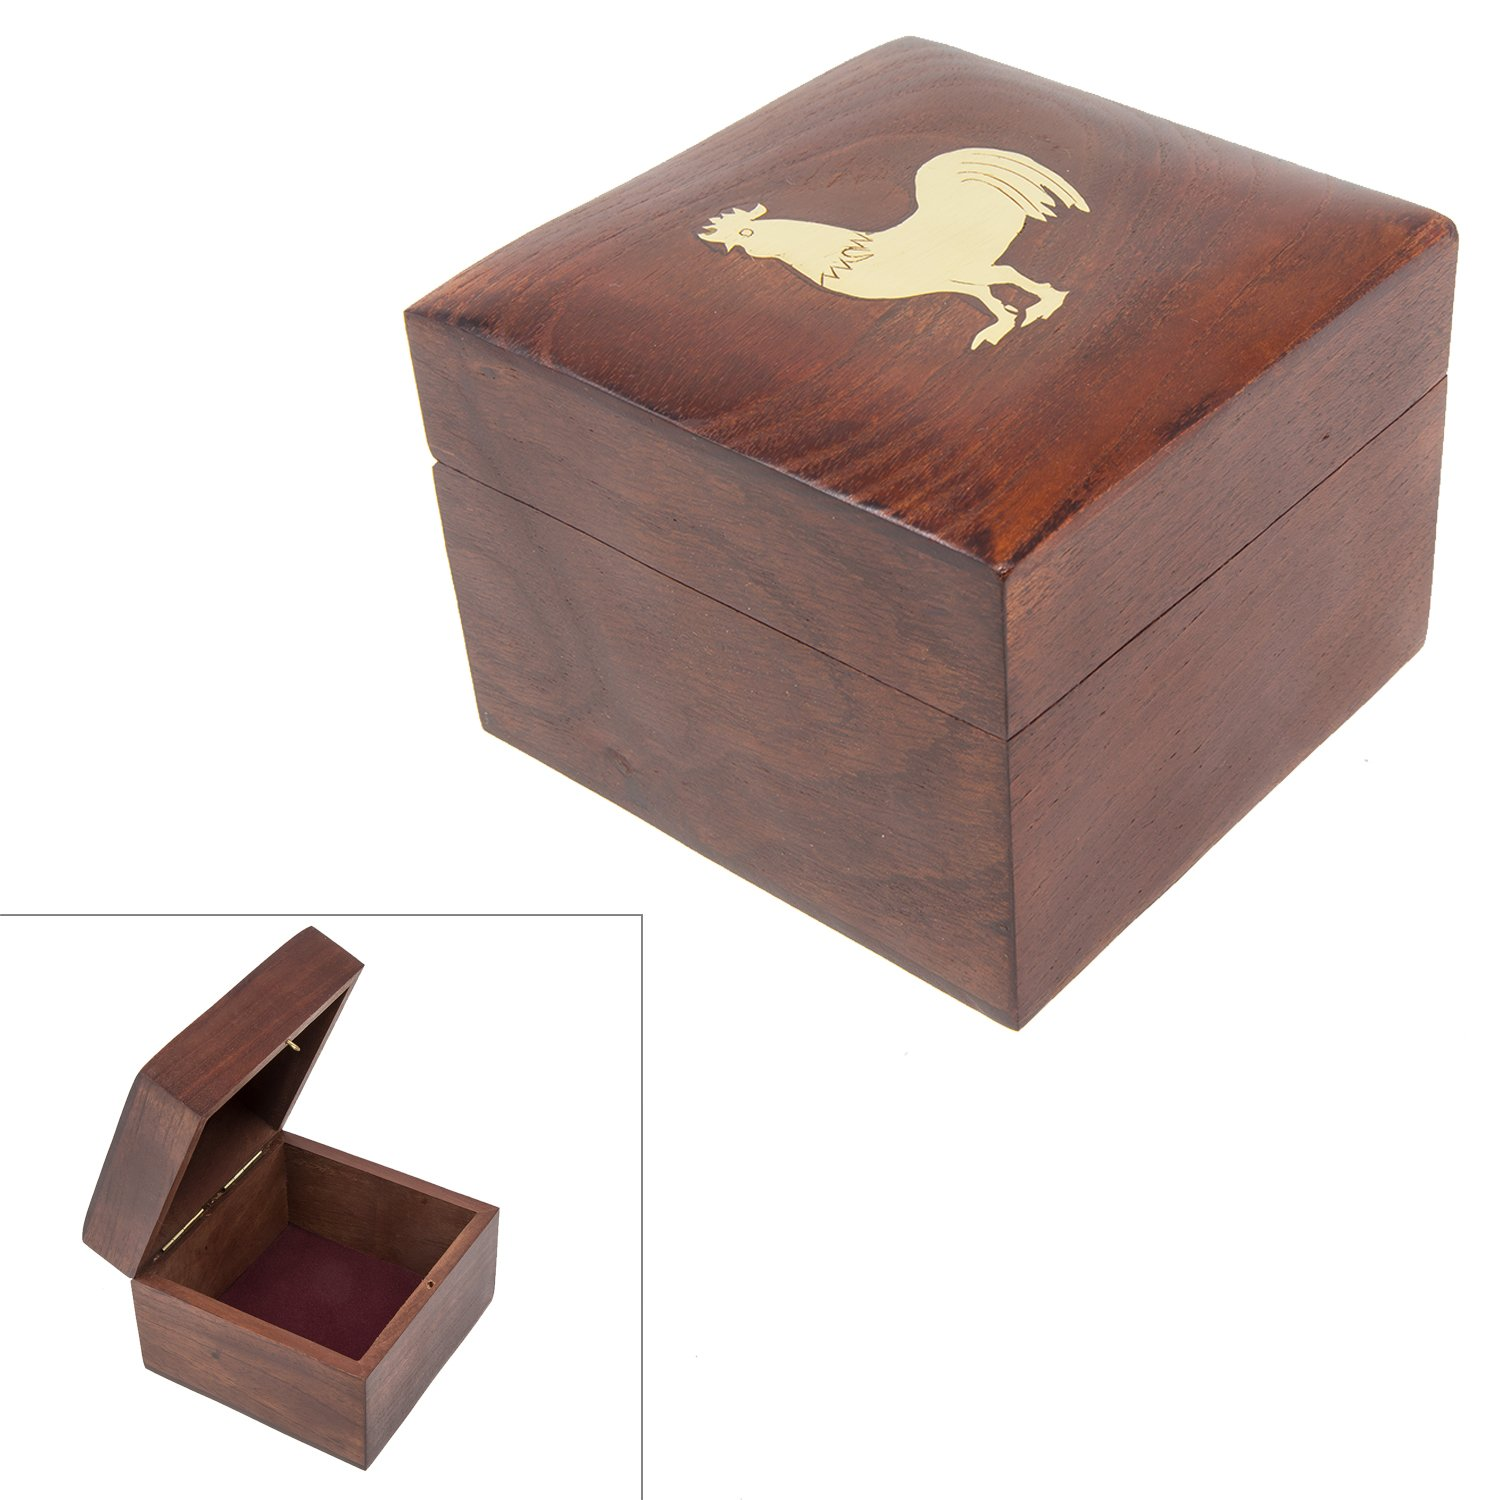 Handmade Wood Square Box Carved by Traditional Artisans of India- Wood Box Storage-Square Wood Box for Trinkets-Rooster Charm,4.5 Inch